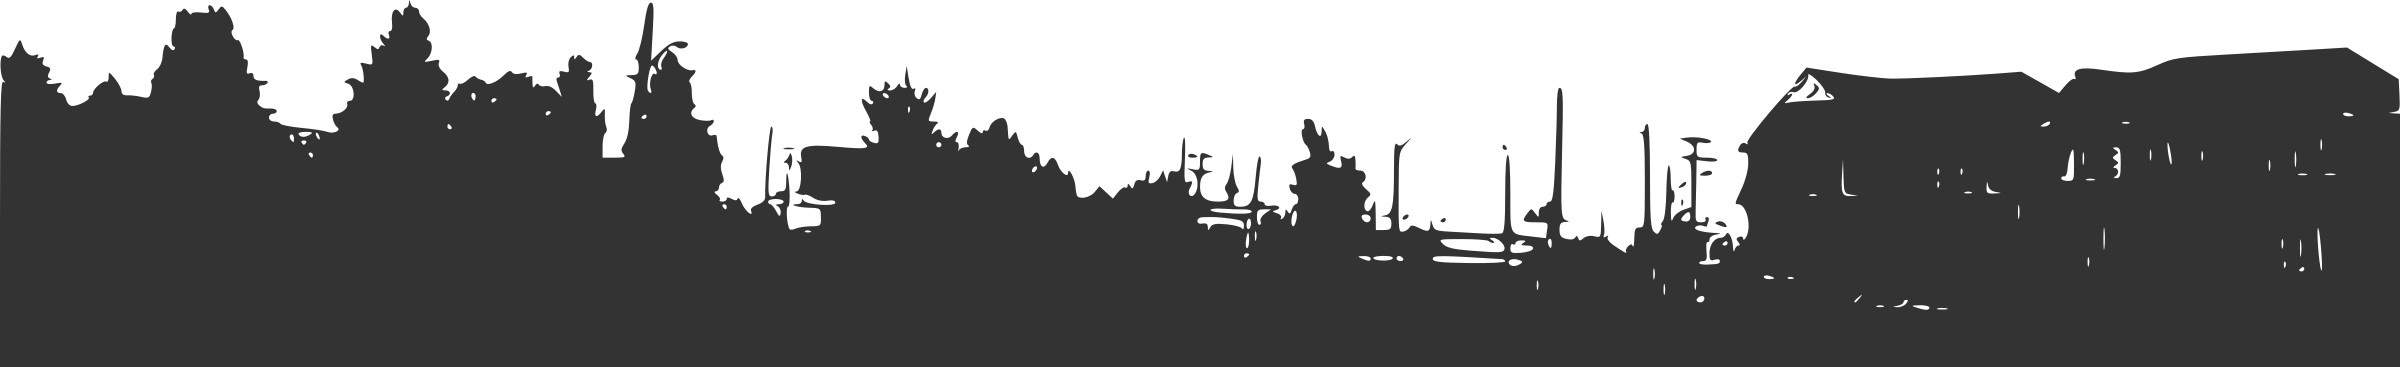 Town silhouette png. Images in collection page